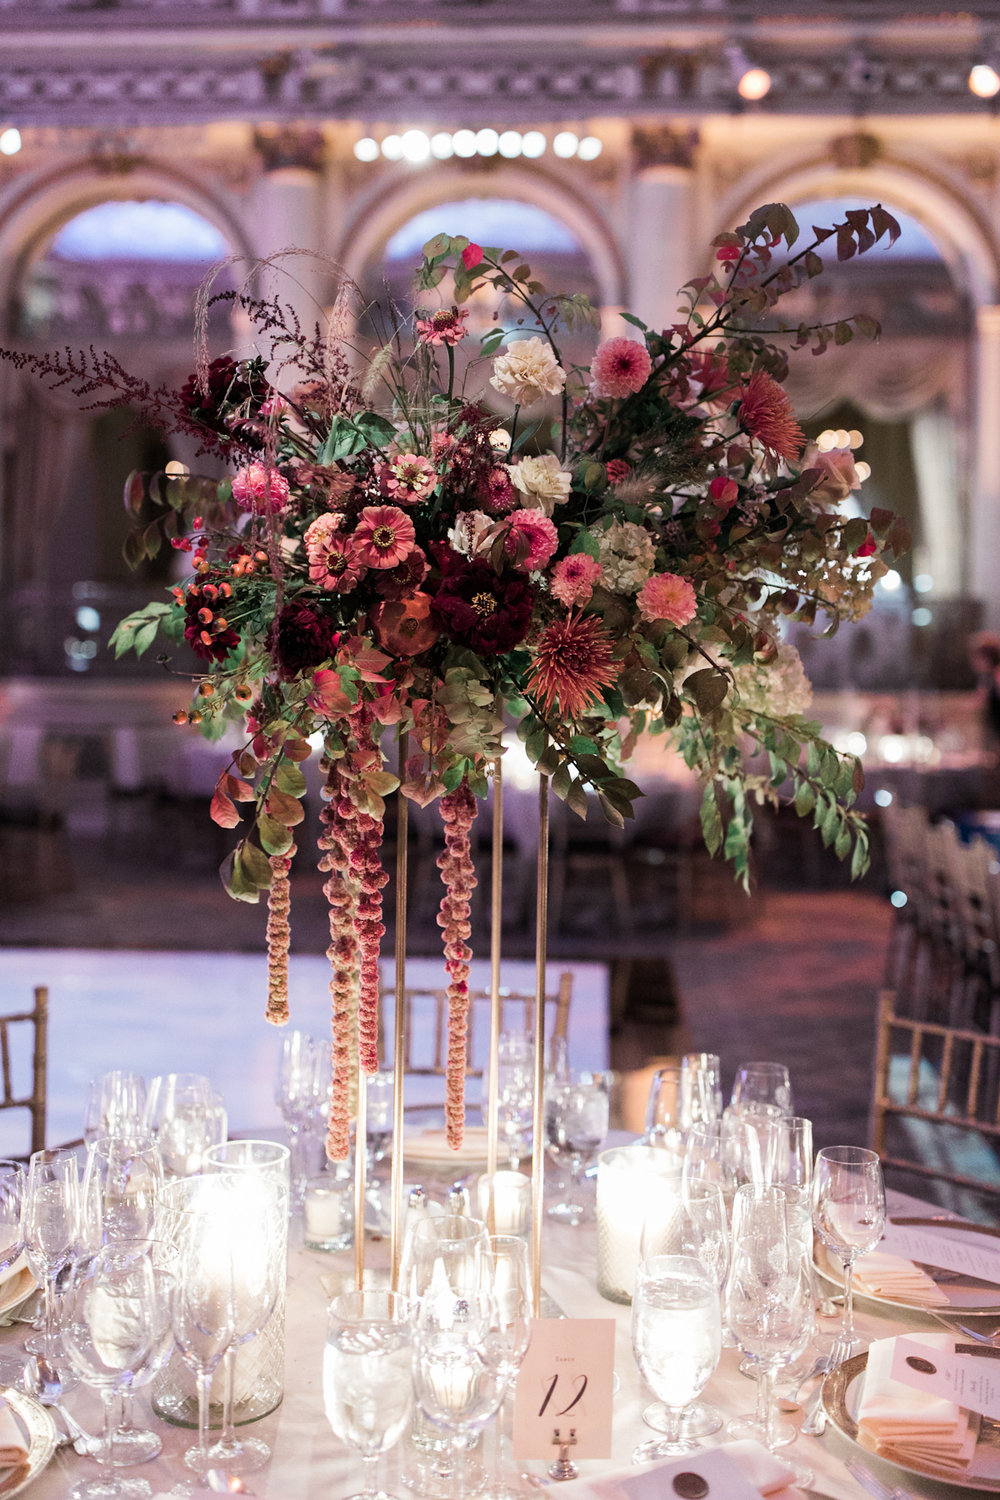 Plaza wedding tall floral centerpieces and candles